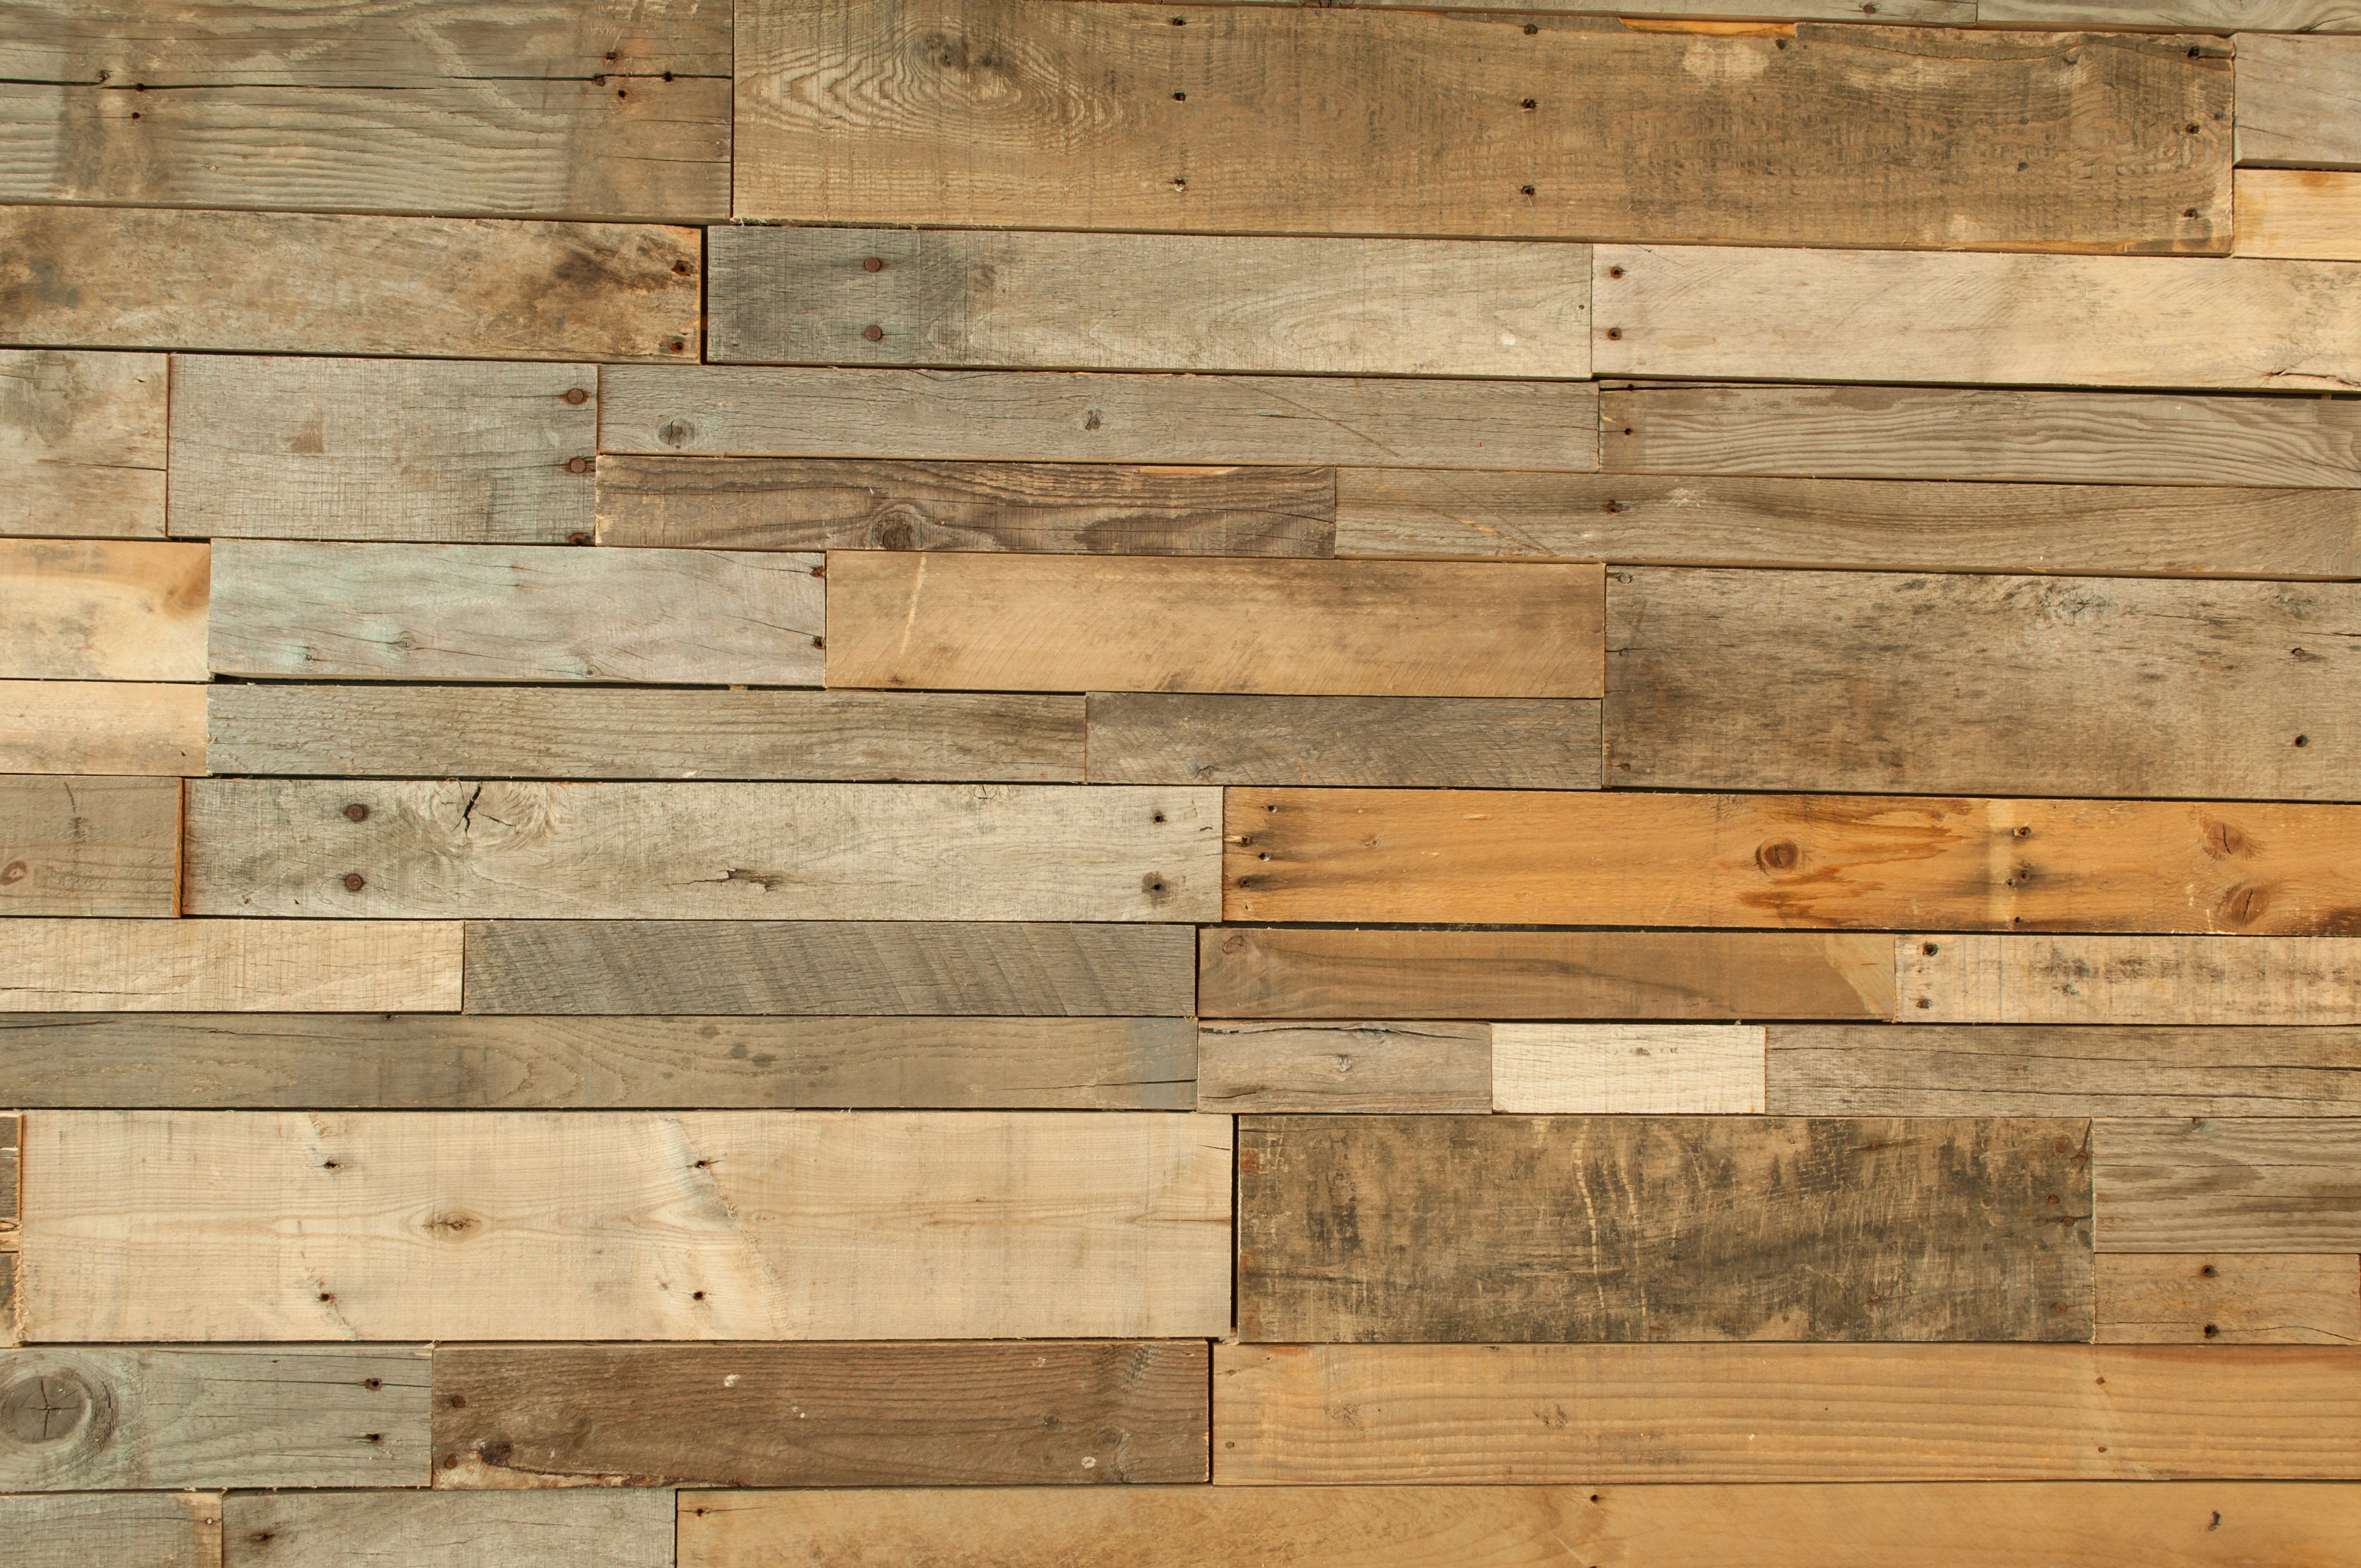 Reclaimed Wood Wall Paneling Sustainable Lumber Company 4205x2793